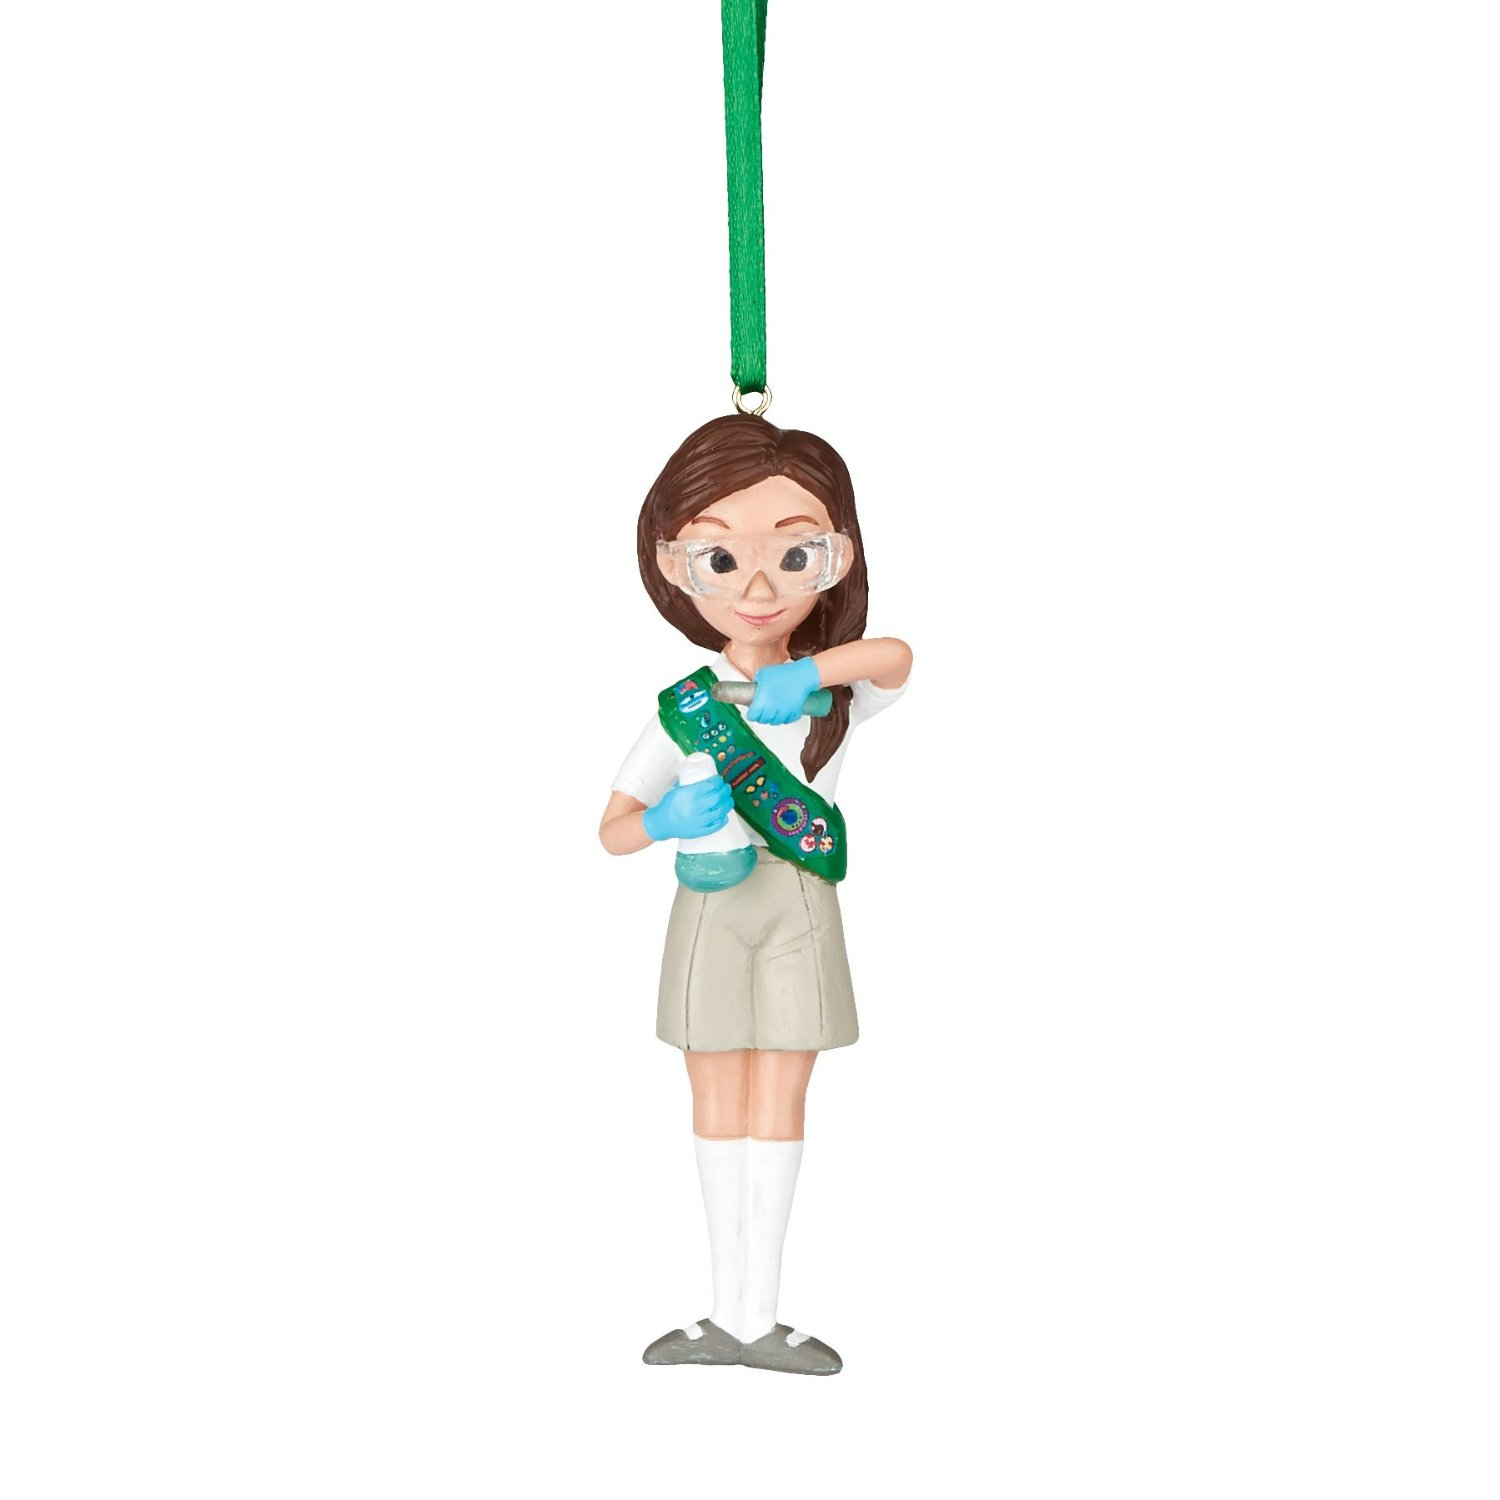 Department 56 Girl Scouts of America Junior Scientist Hanging Ornament, 3.5 inch